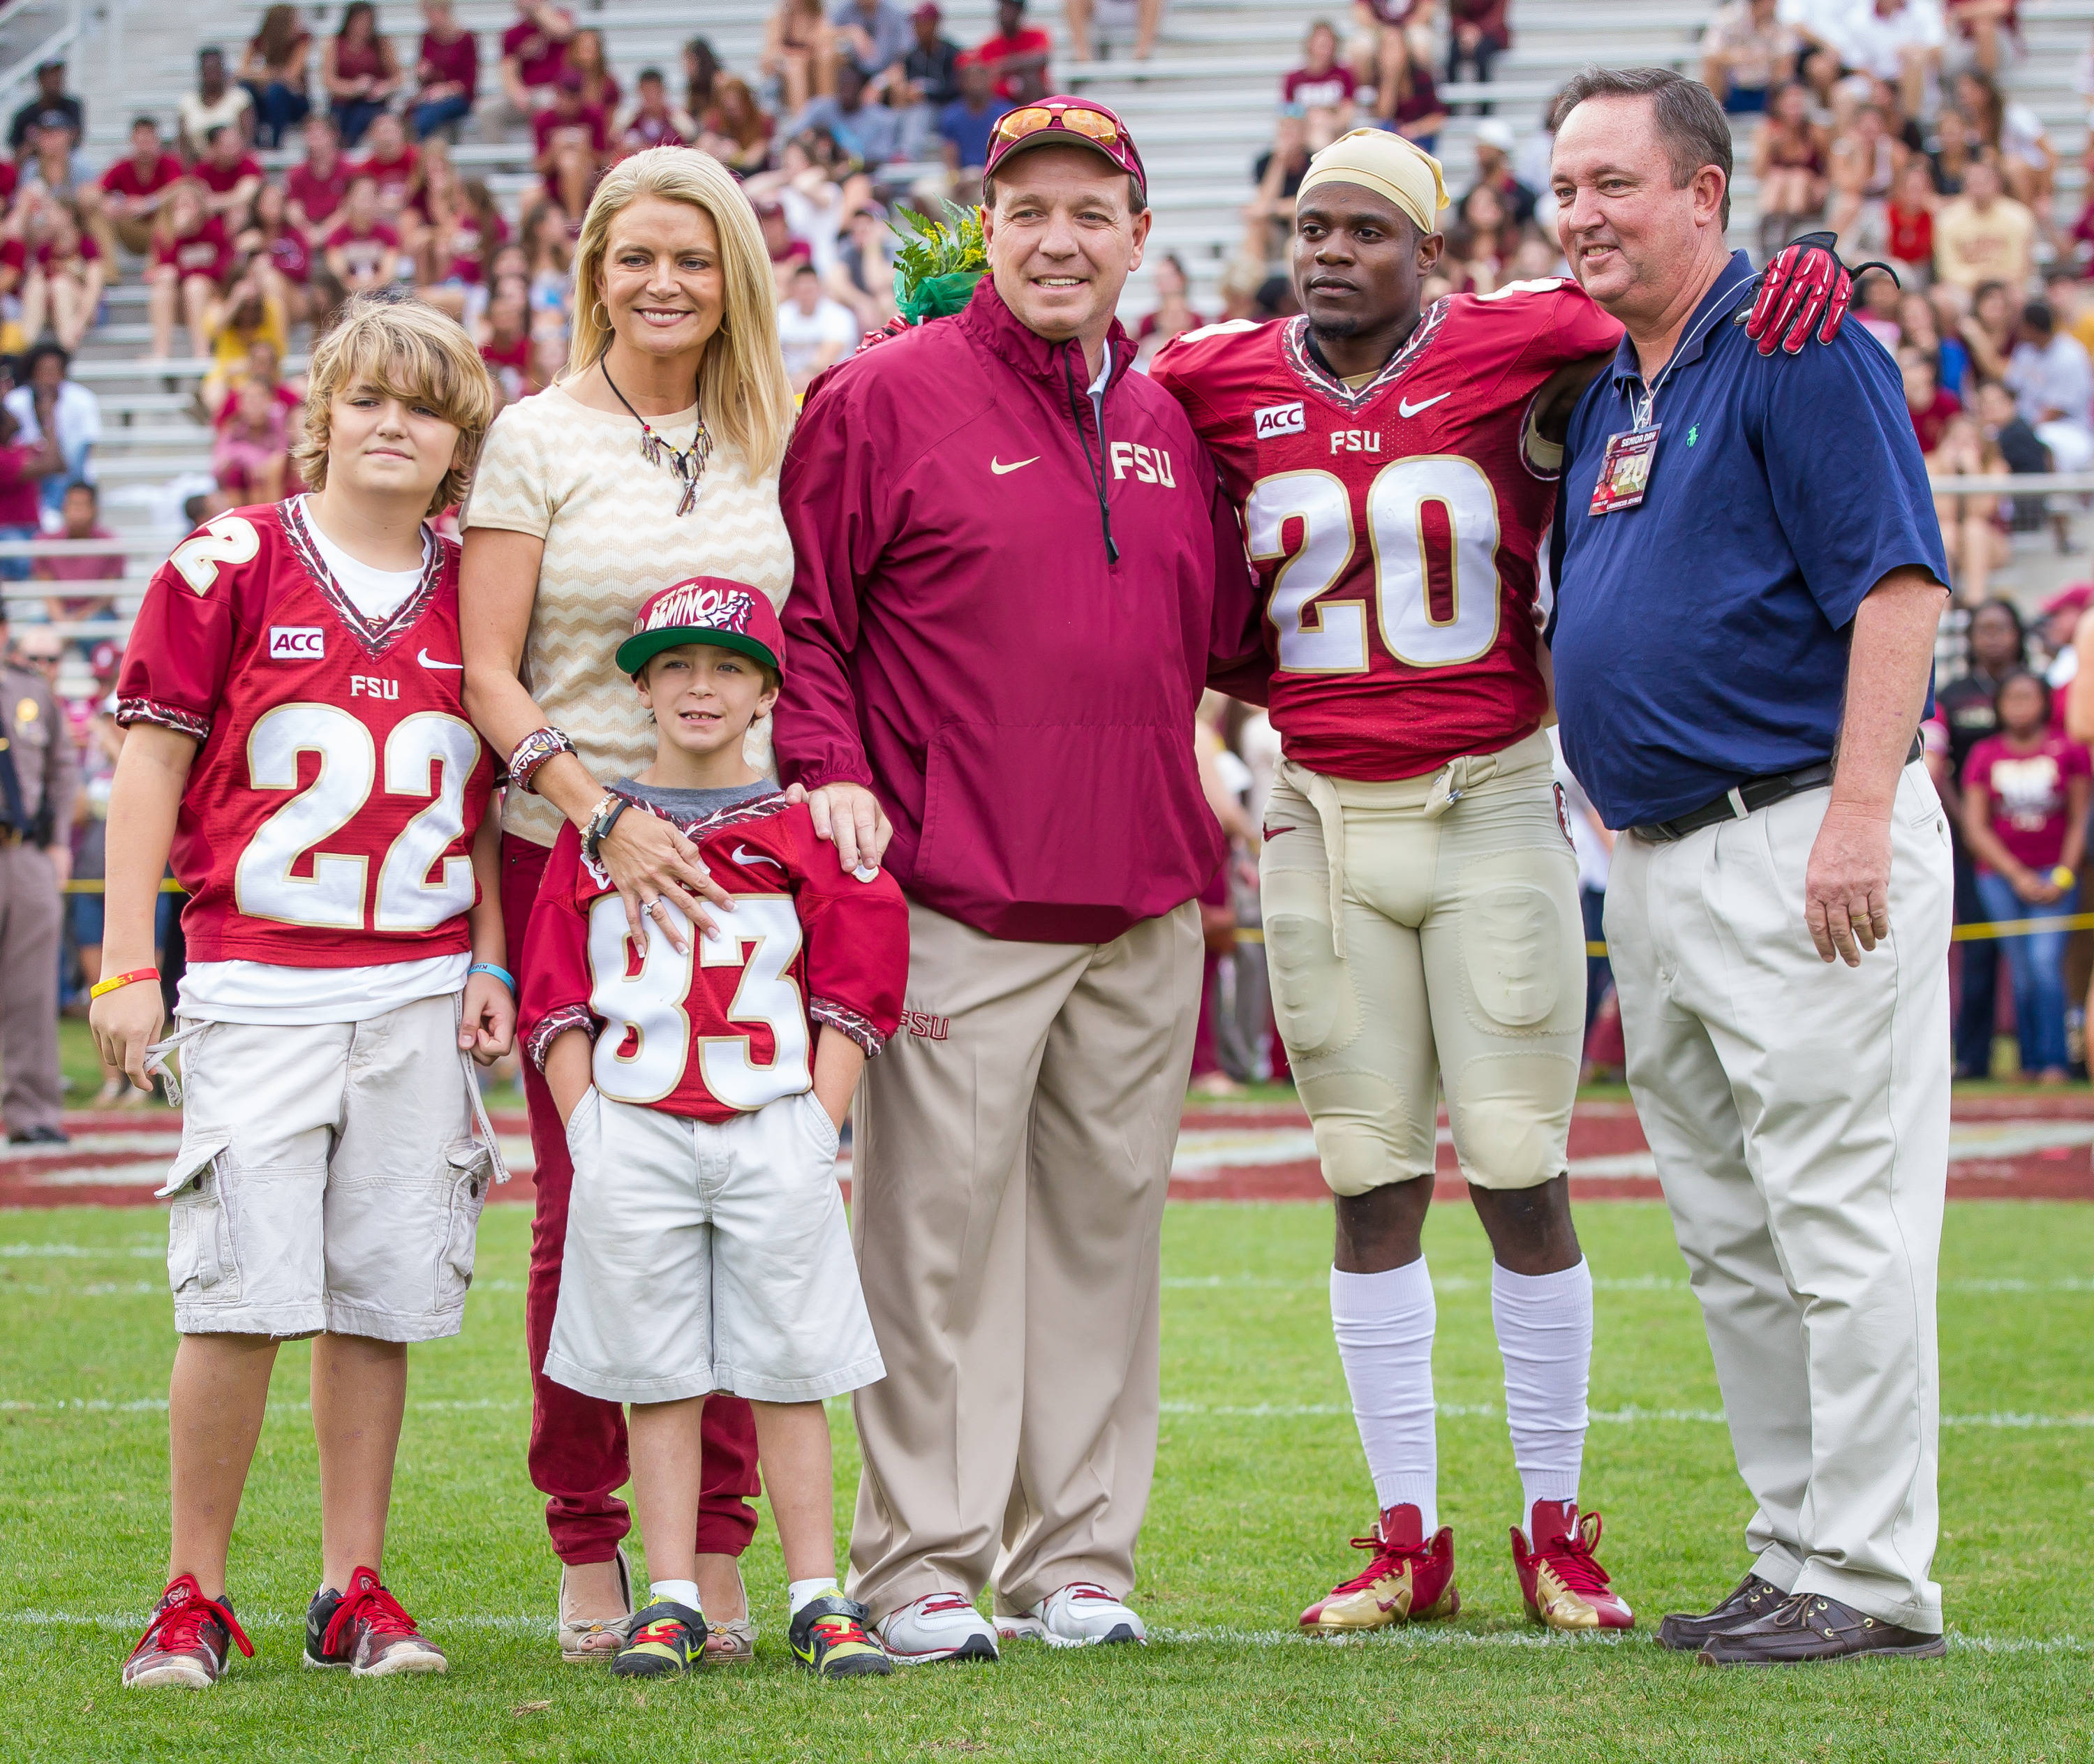 Lamarcus Joyner (20) is recognized during senior day festivities by Jimbo Fisher and family.